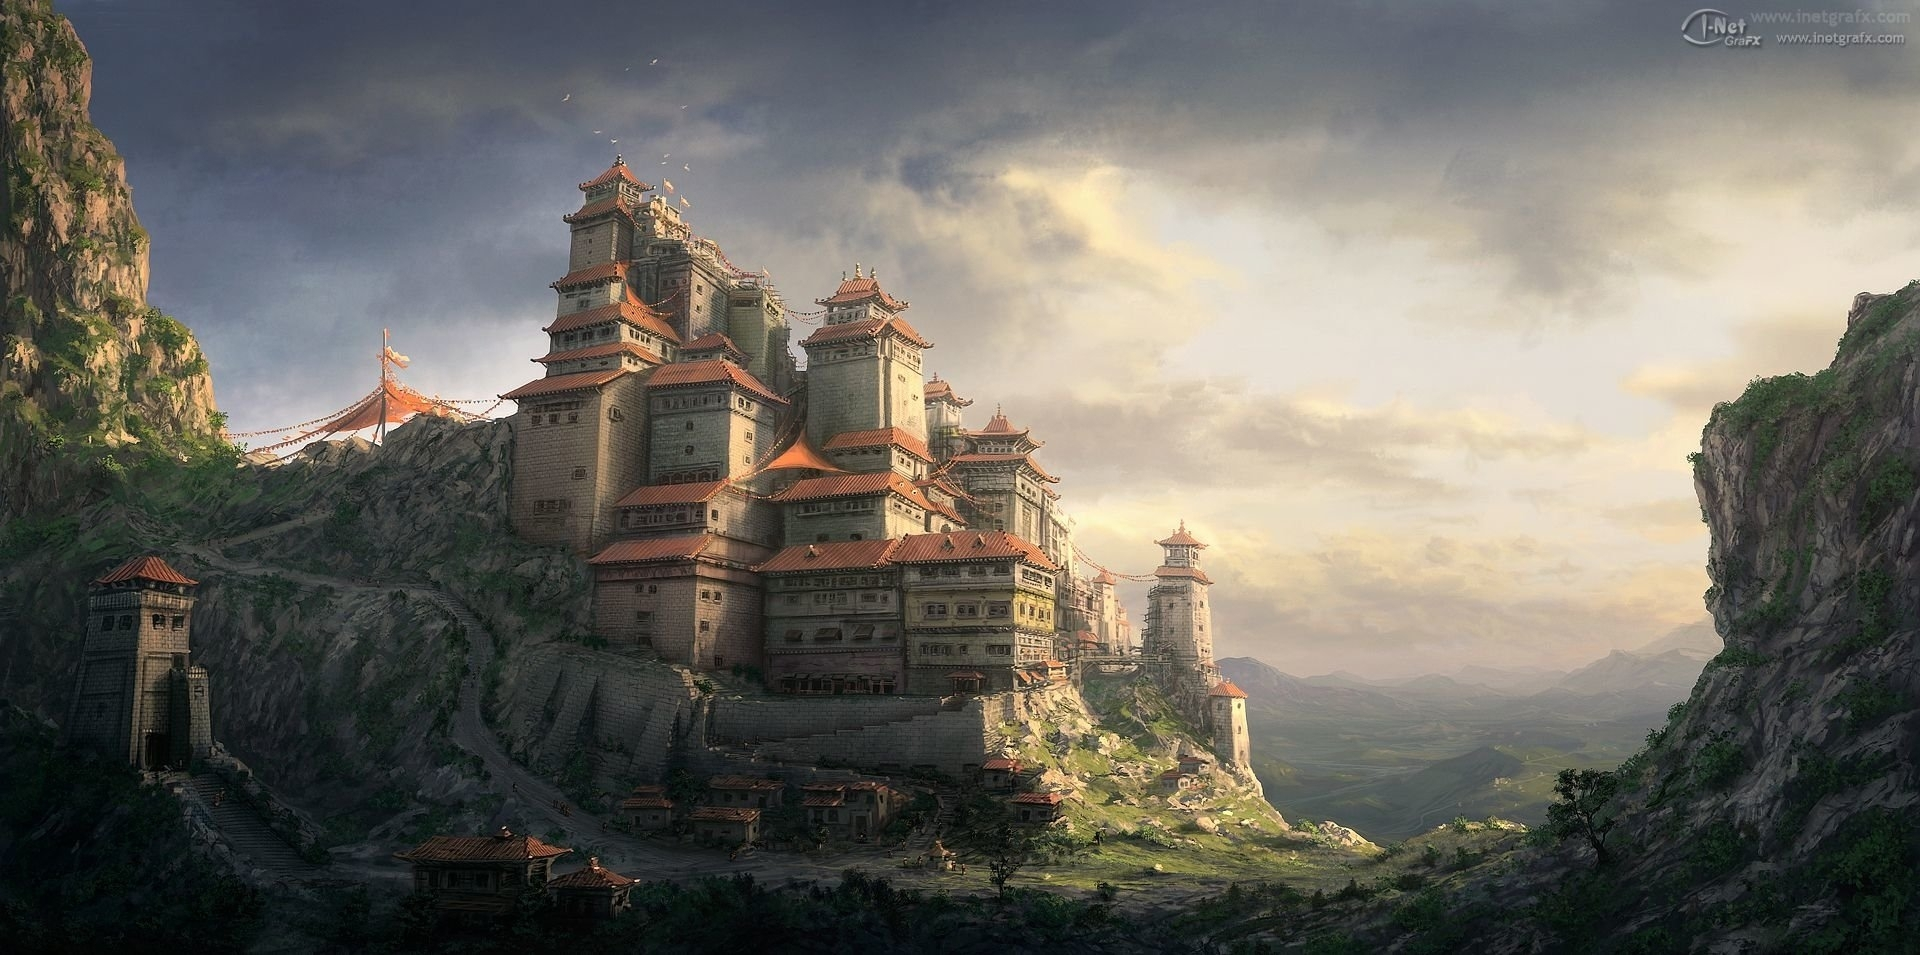 397 castle hd wallpapers   background images - wallpaper abyss